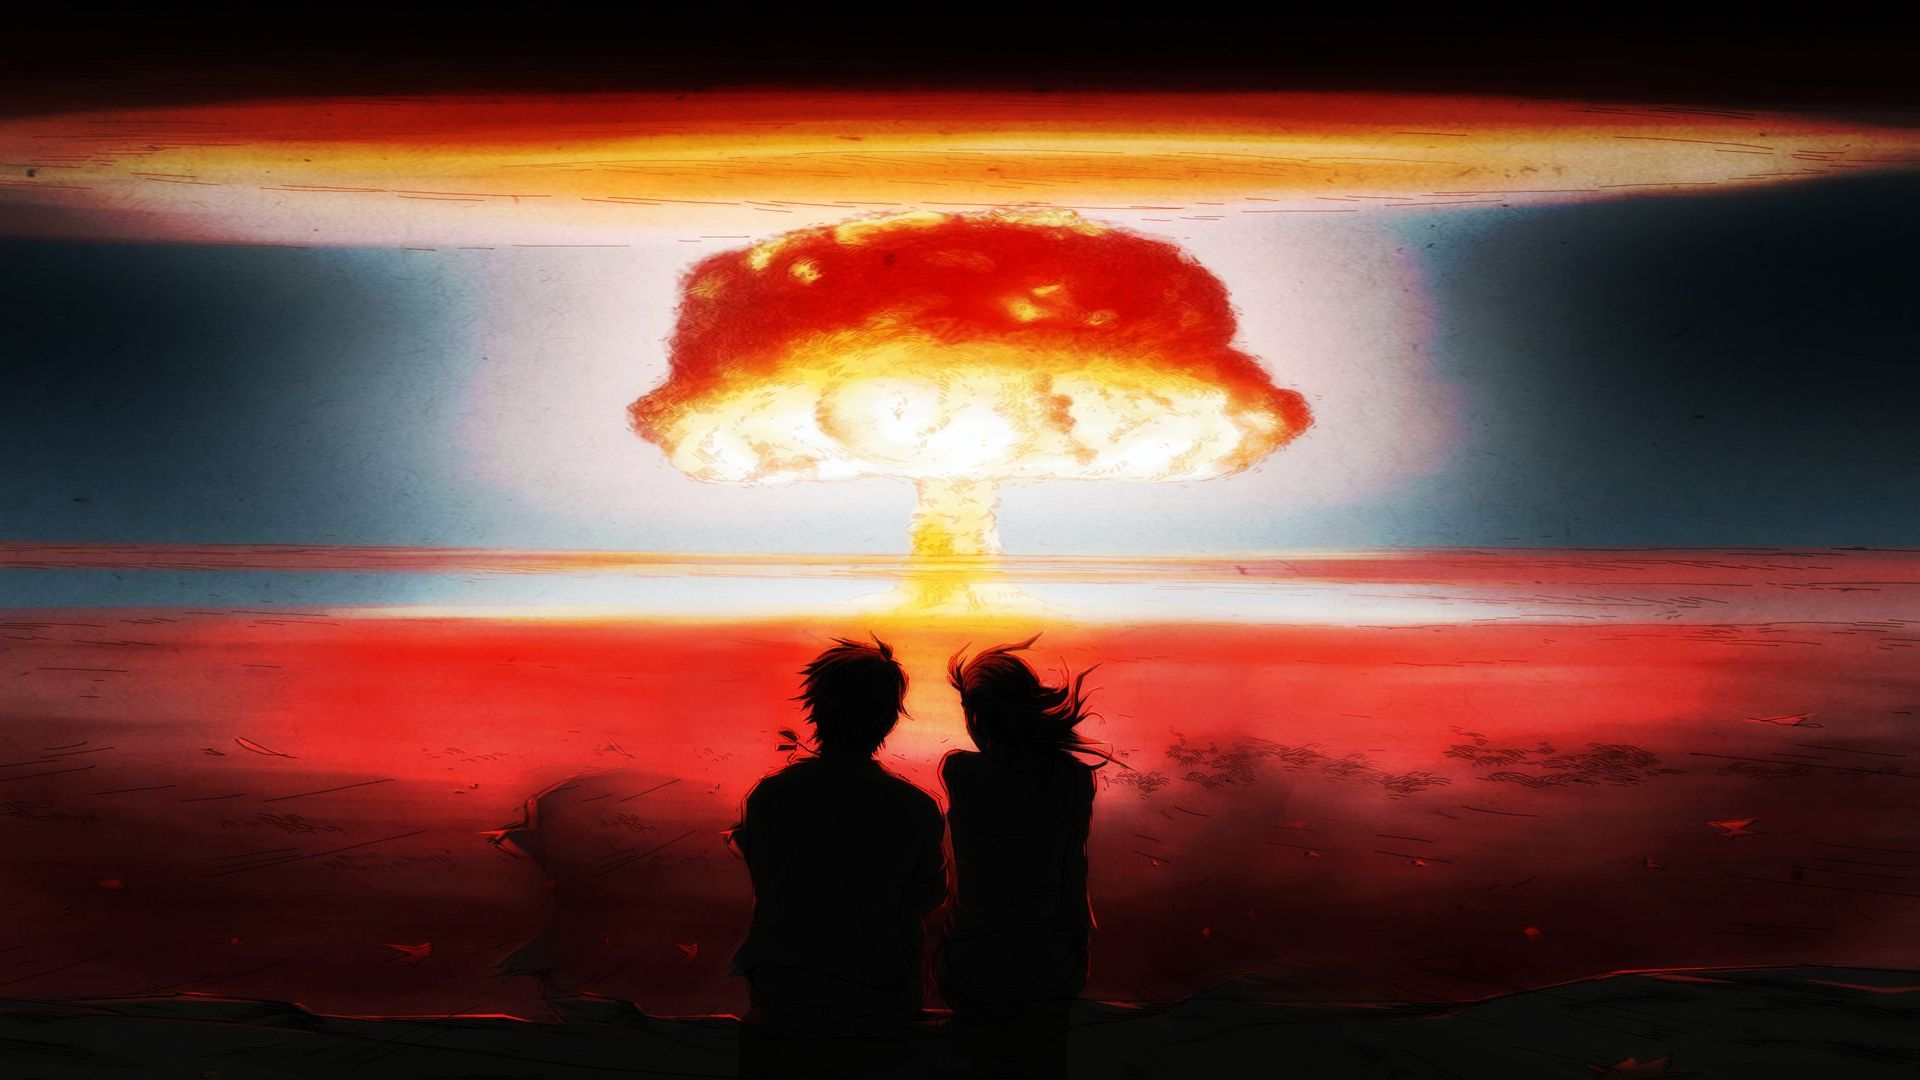 Watching a nuclear explosion